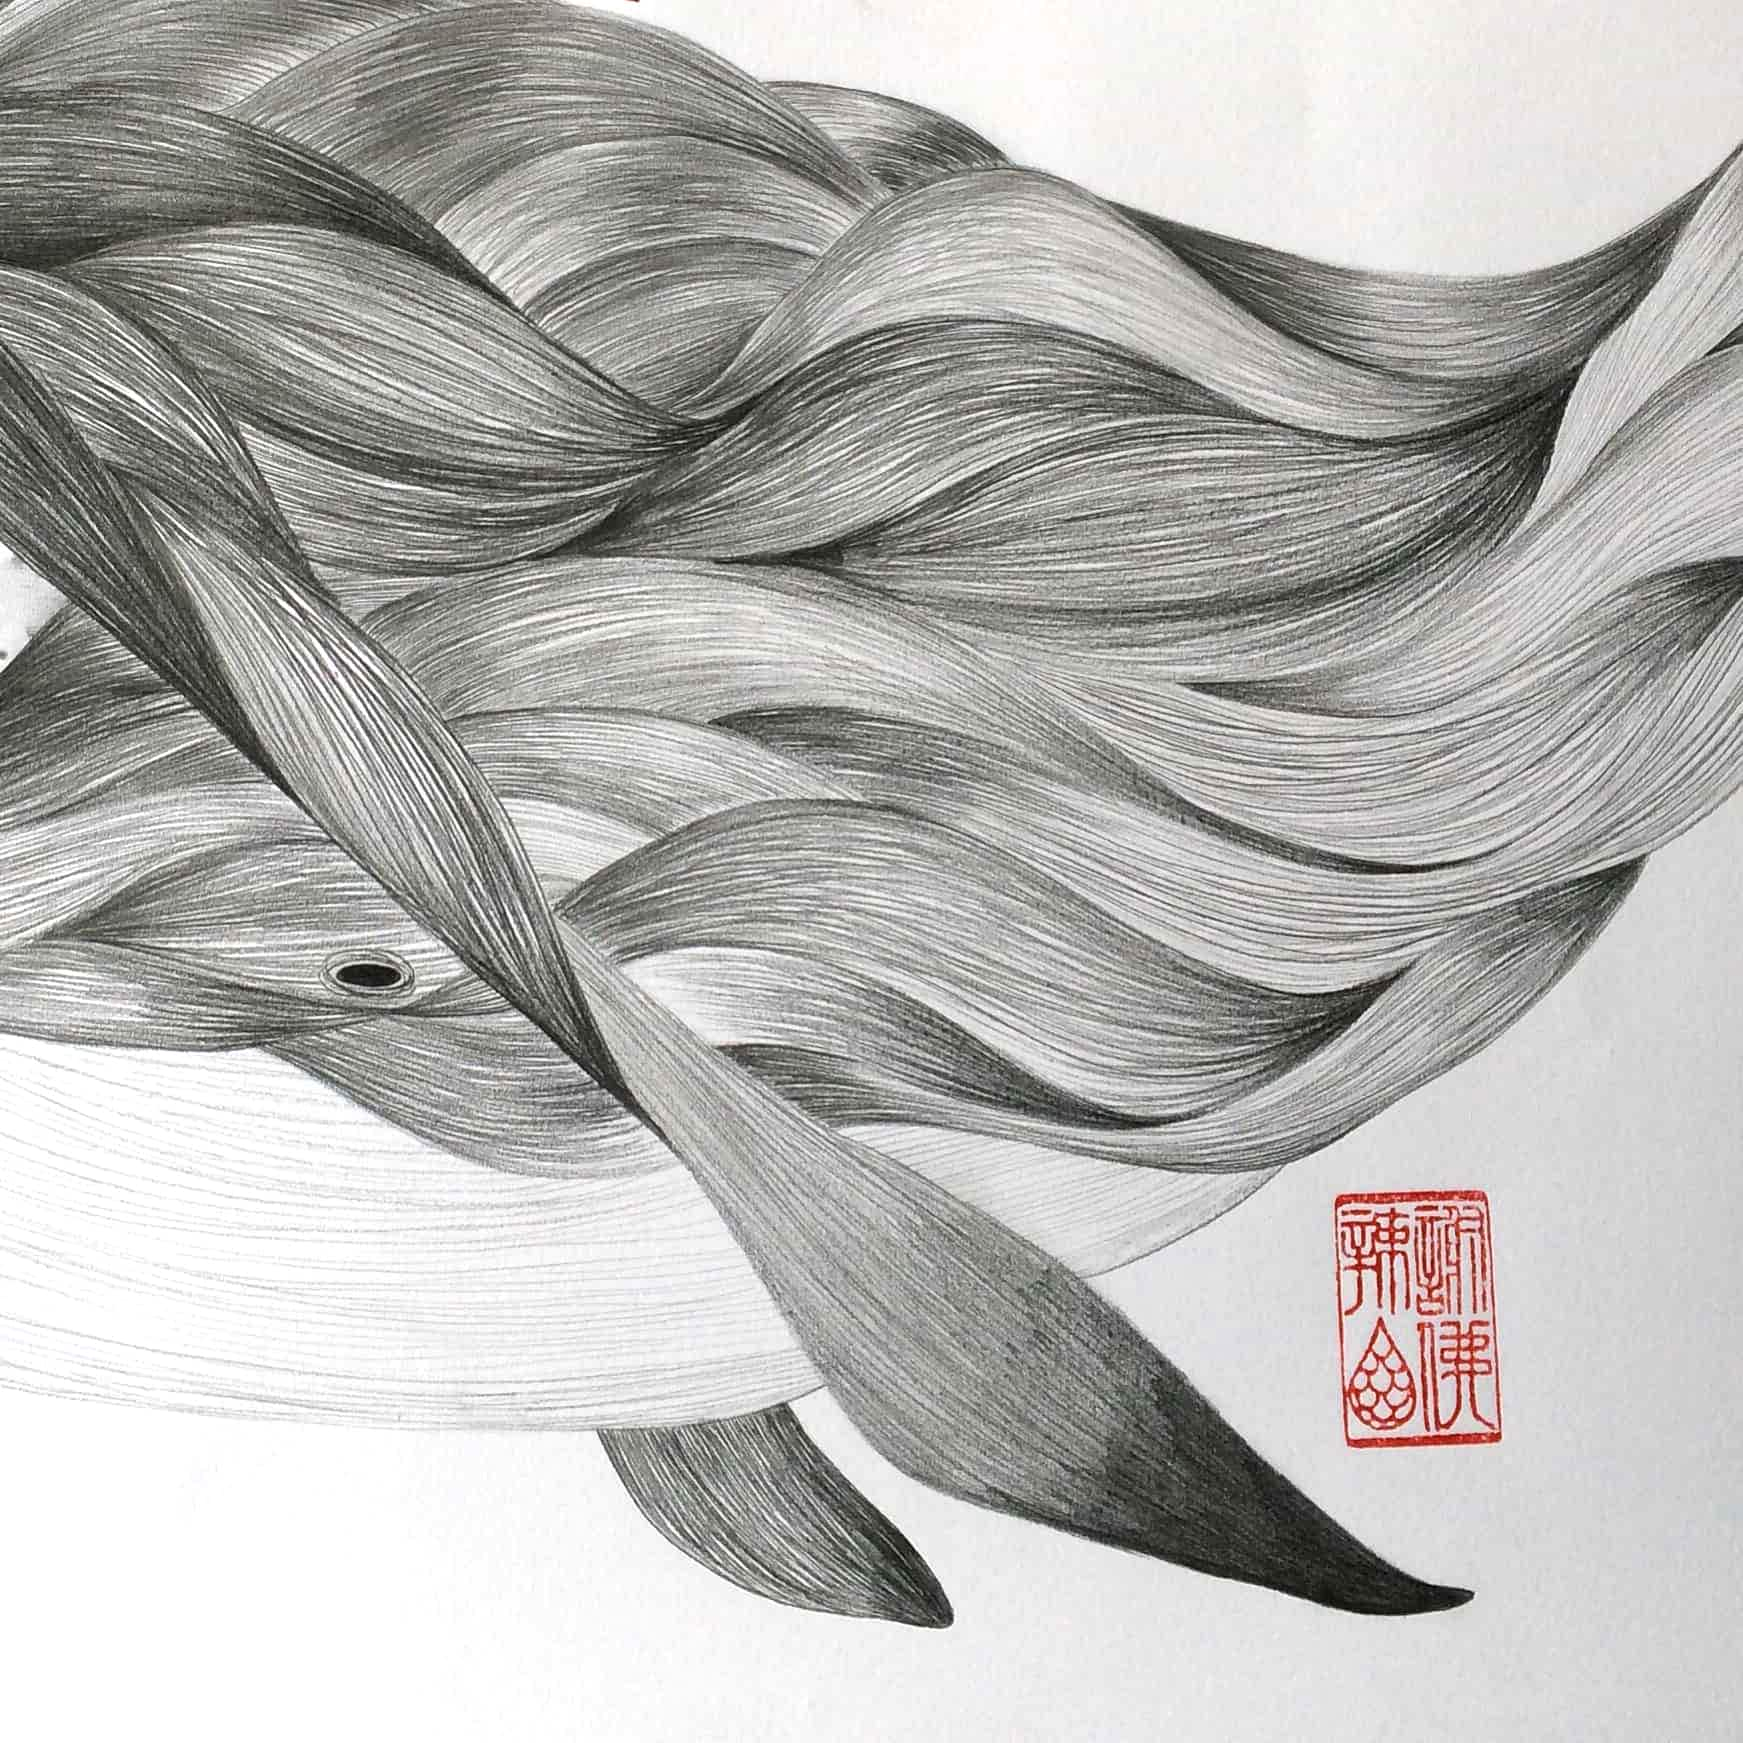 seforapons-graphite-collage-symbiosis-red-boat-whale-girl-kujirachan-3